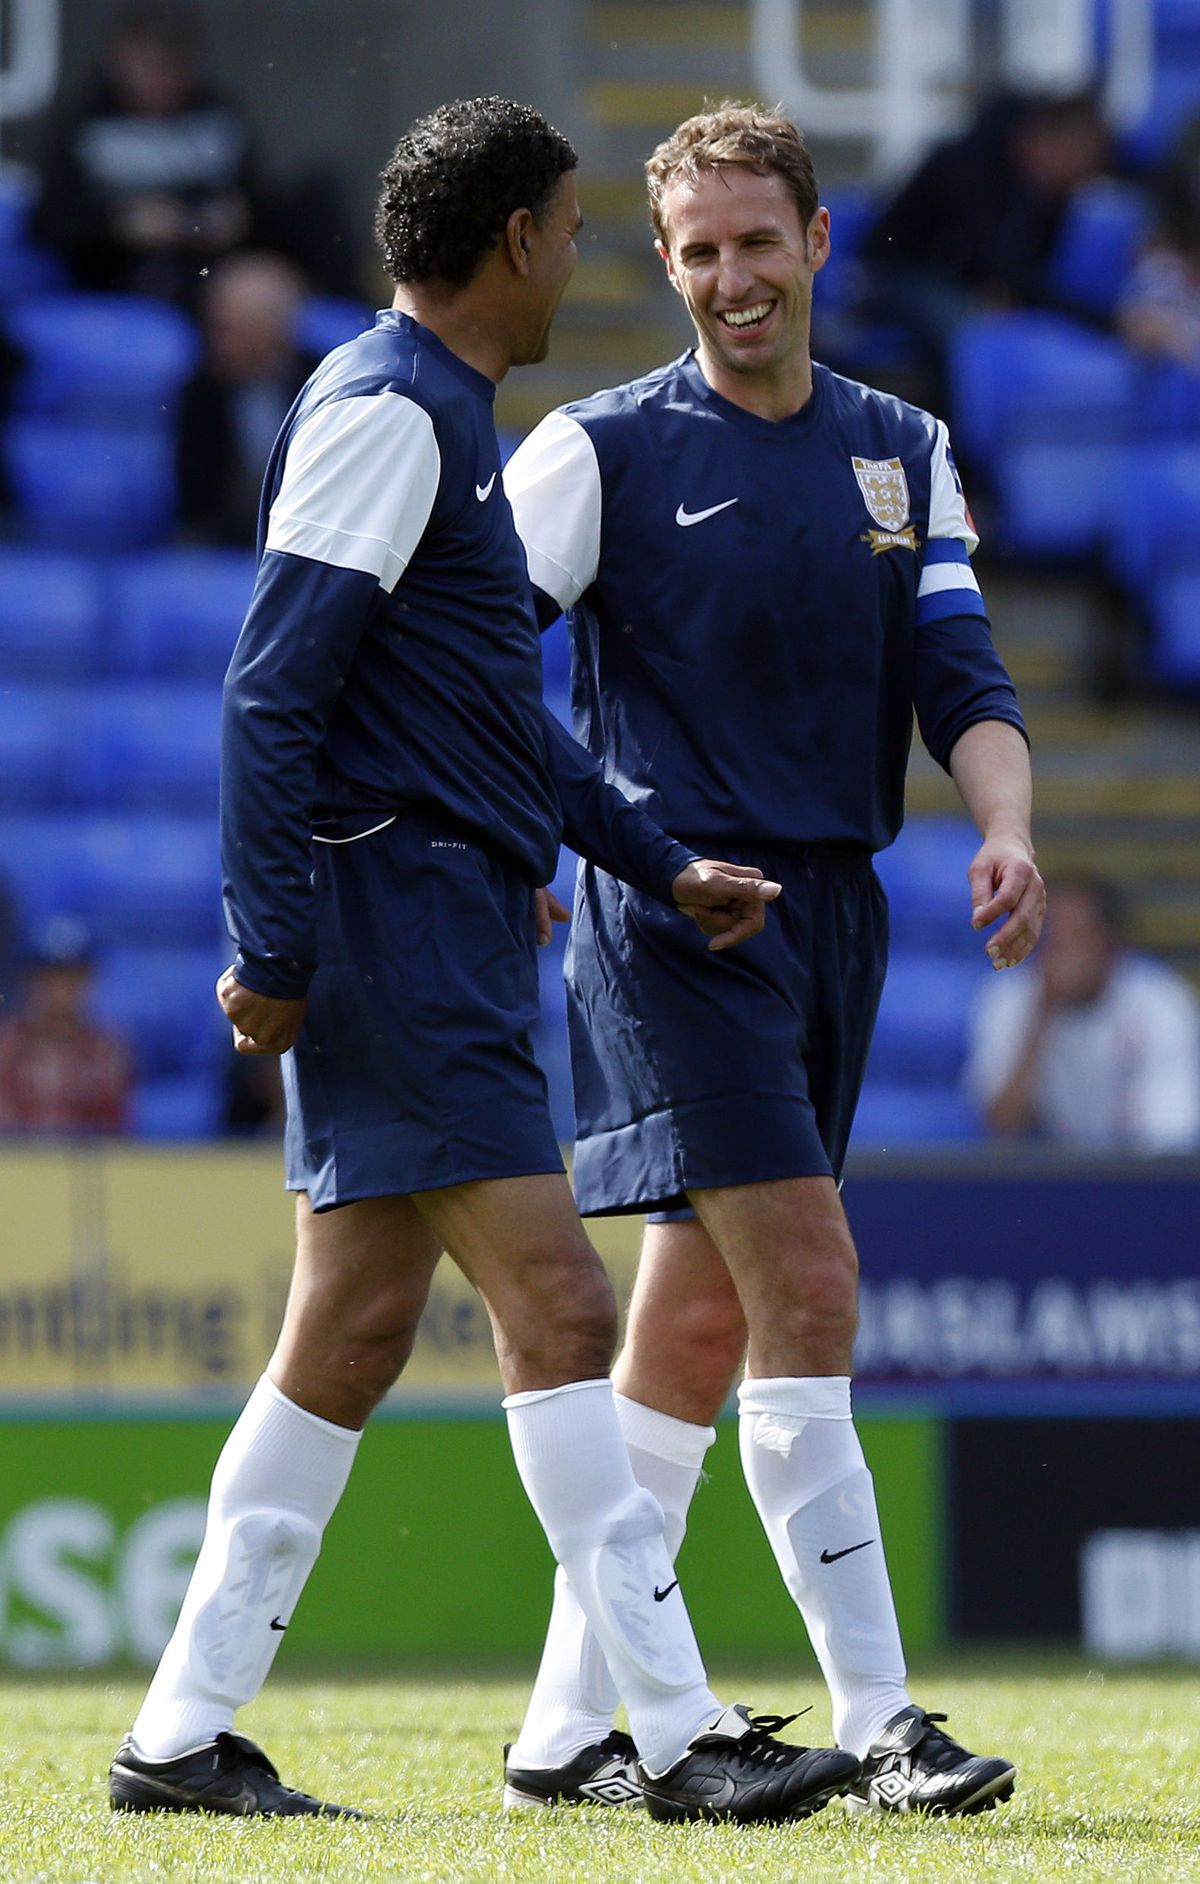 Gareth Southgate (right) and Chris Kamara (left) share a joke during the match between the British Army and FA Legends at the Madejski Stadium, Reading